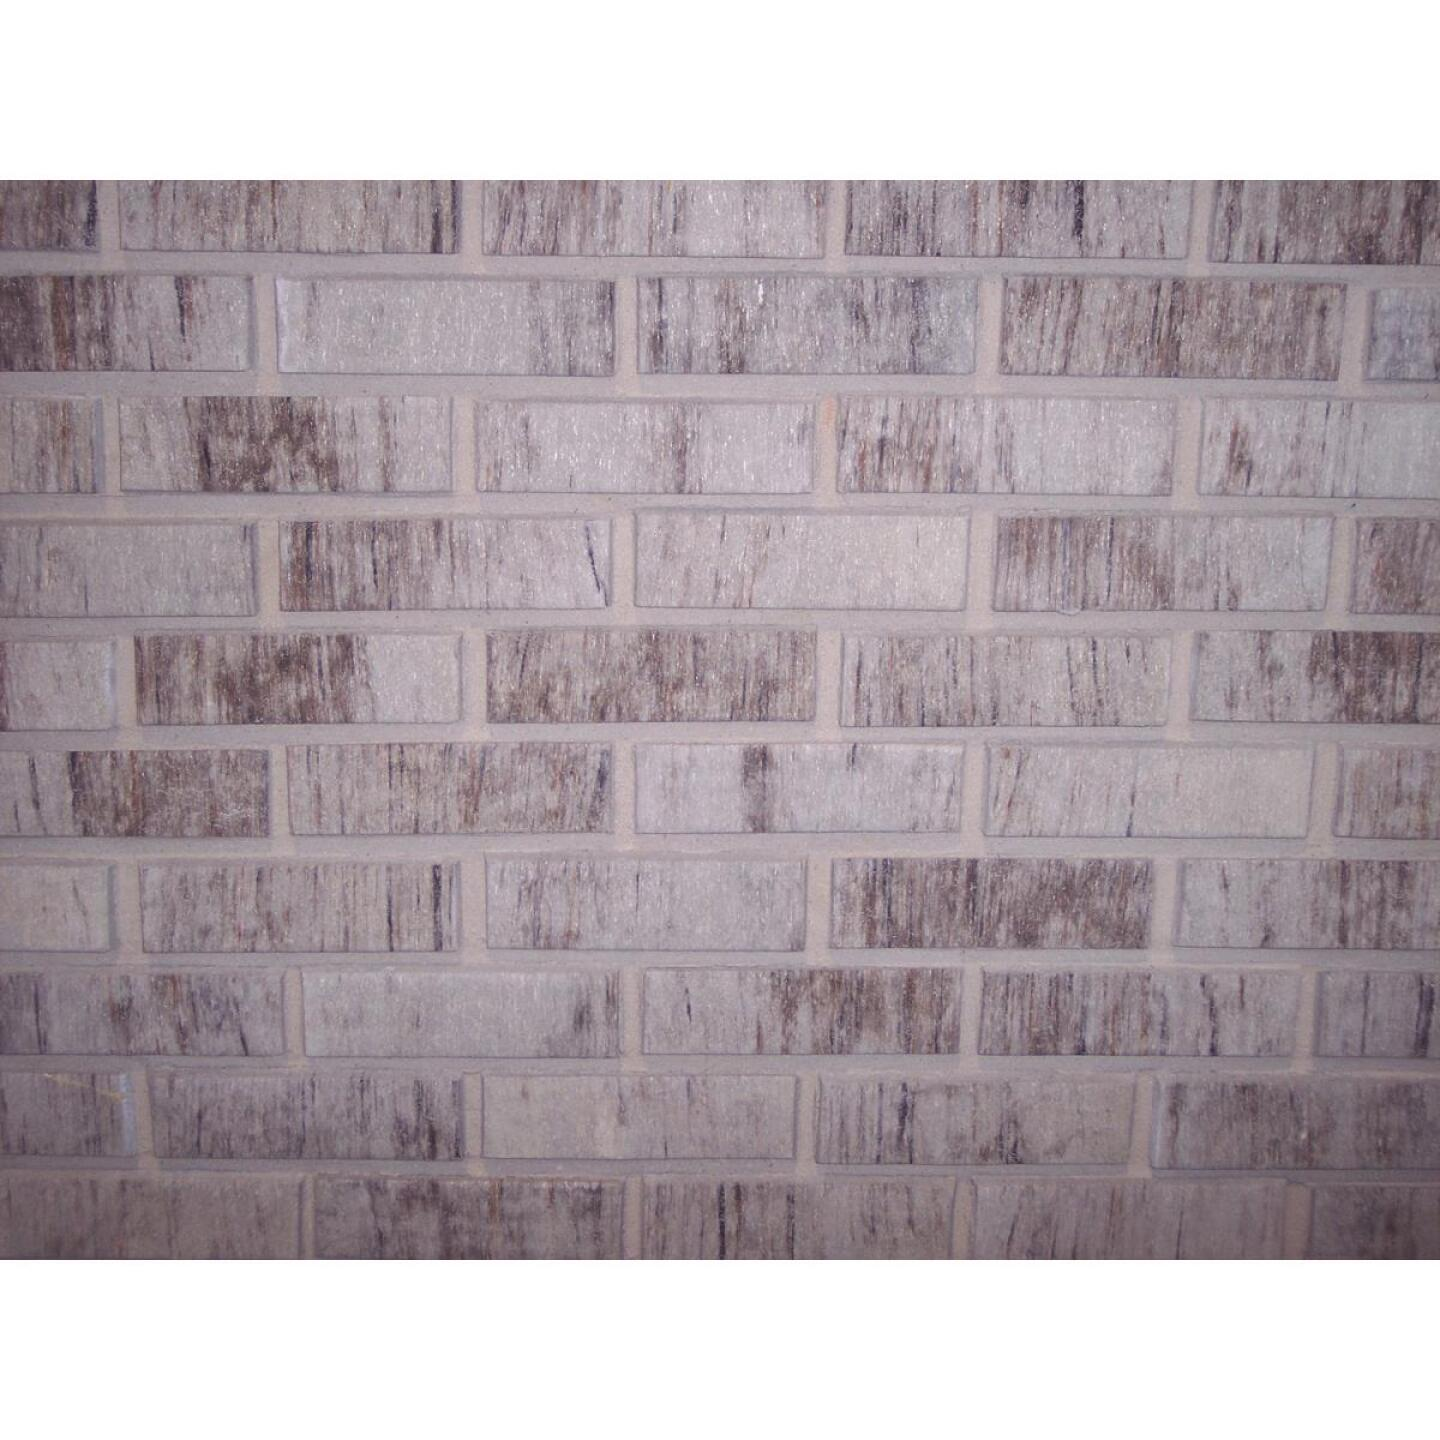 Z-Brick Americana 2-1/4 In. x 8 In. Gray Facing Brick Image 1